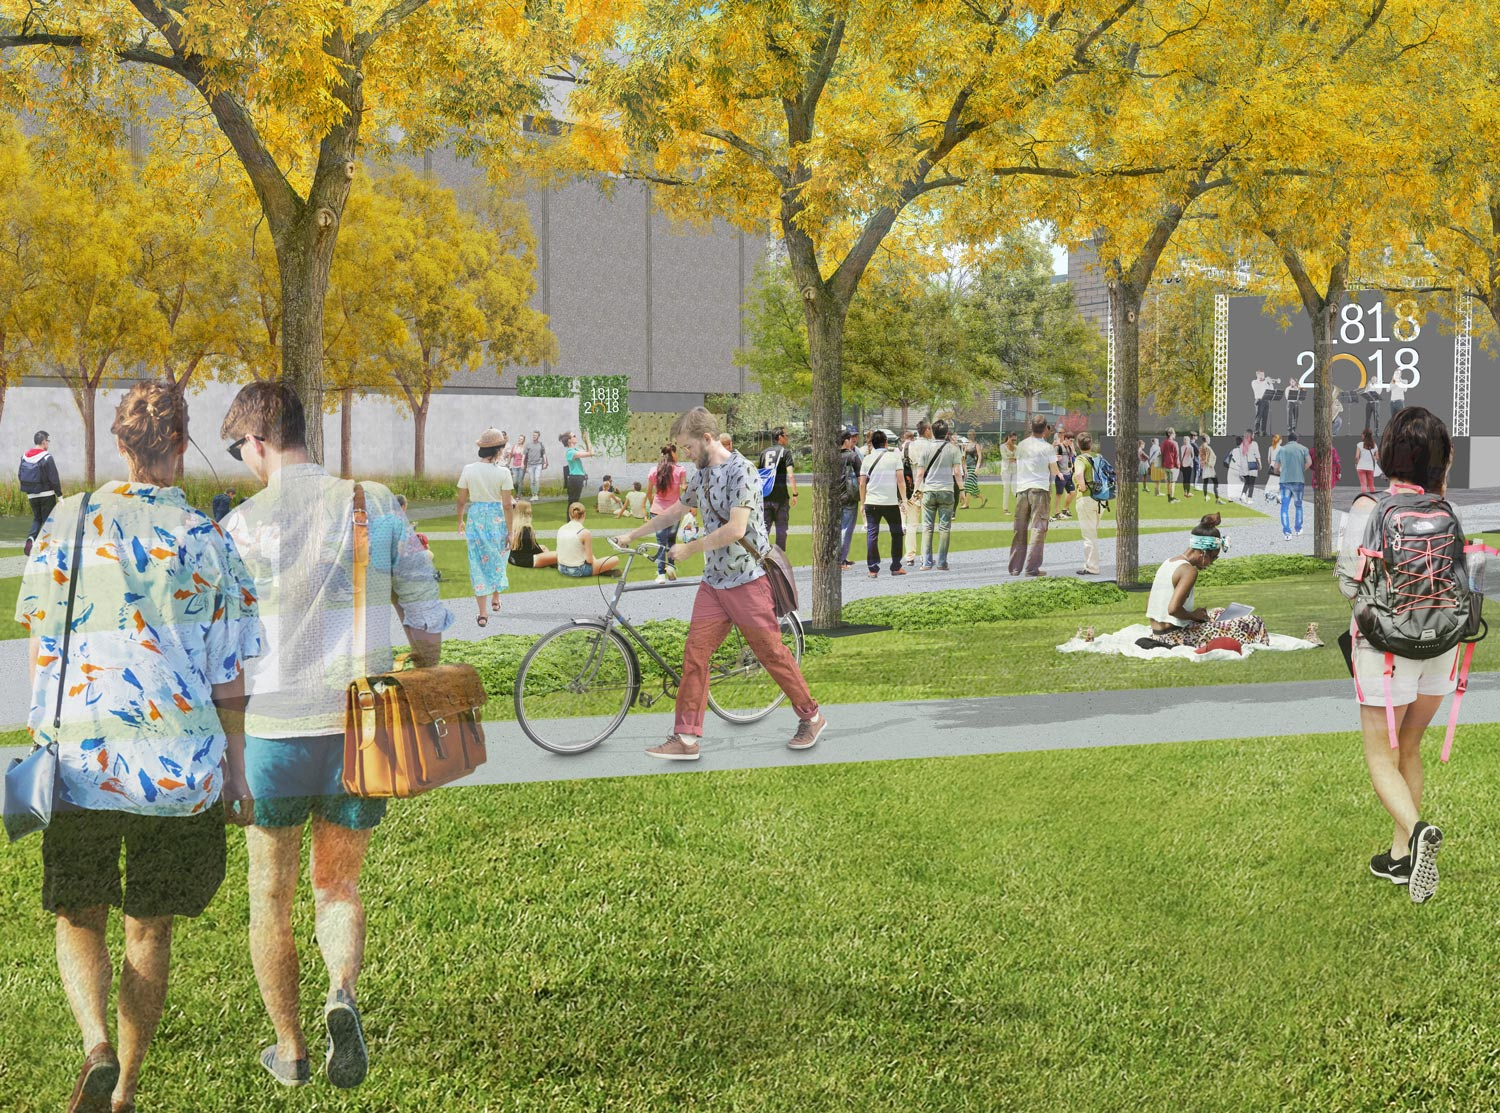 ACTIVE SPACES The common is now designed to be a venue for the Dalhousie Community to engage in events of all sizes including outdoor study, concert, rallies, recreation, art installations and relaxation.